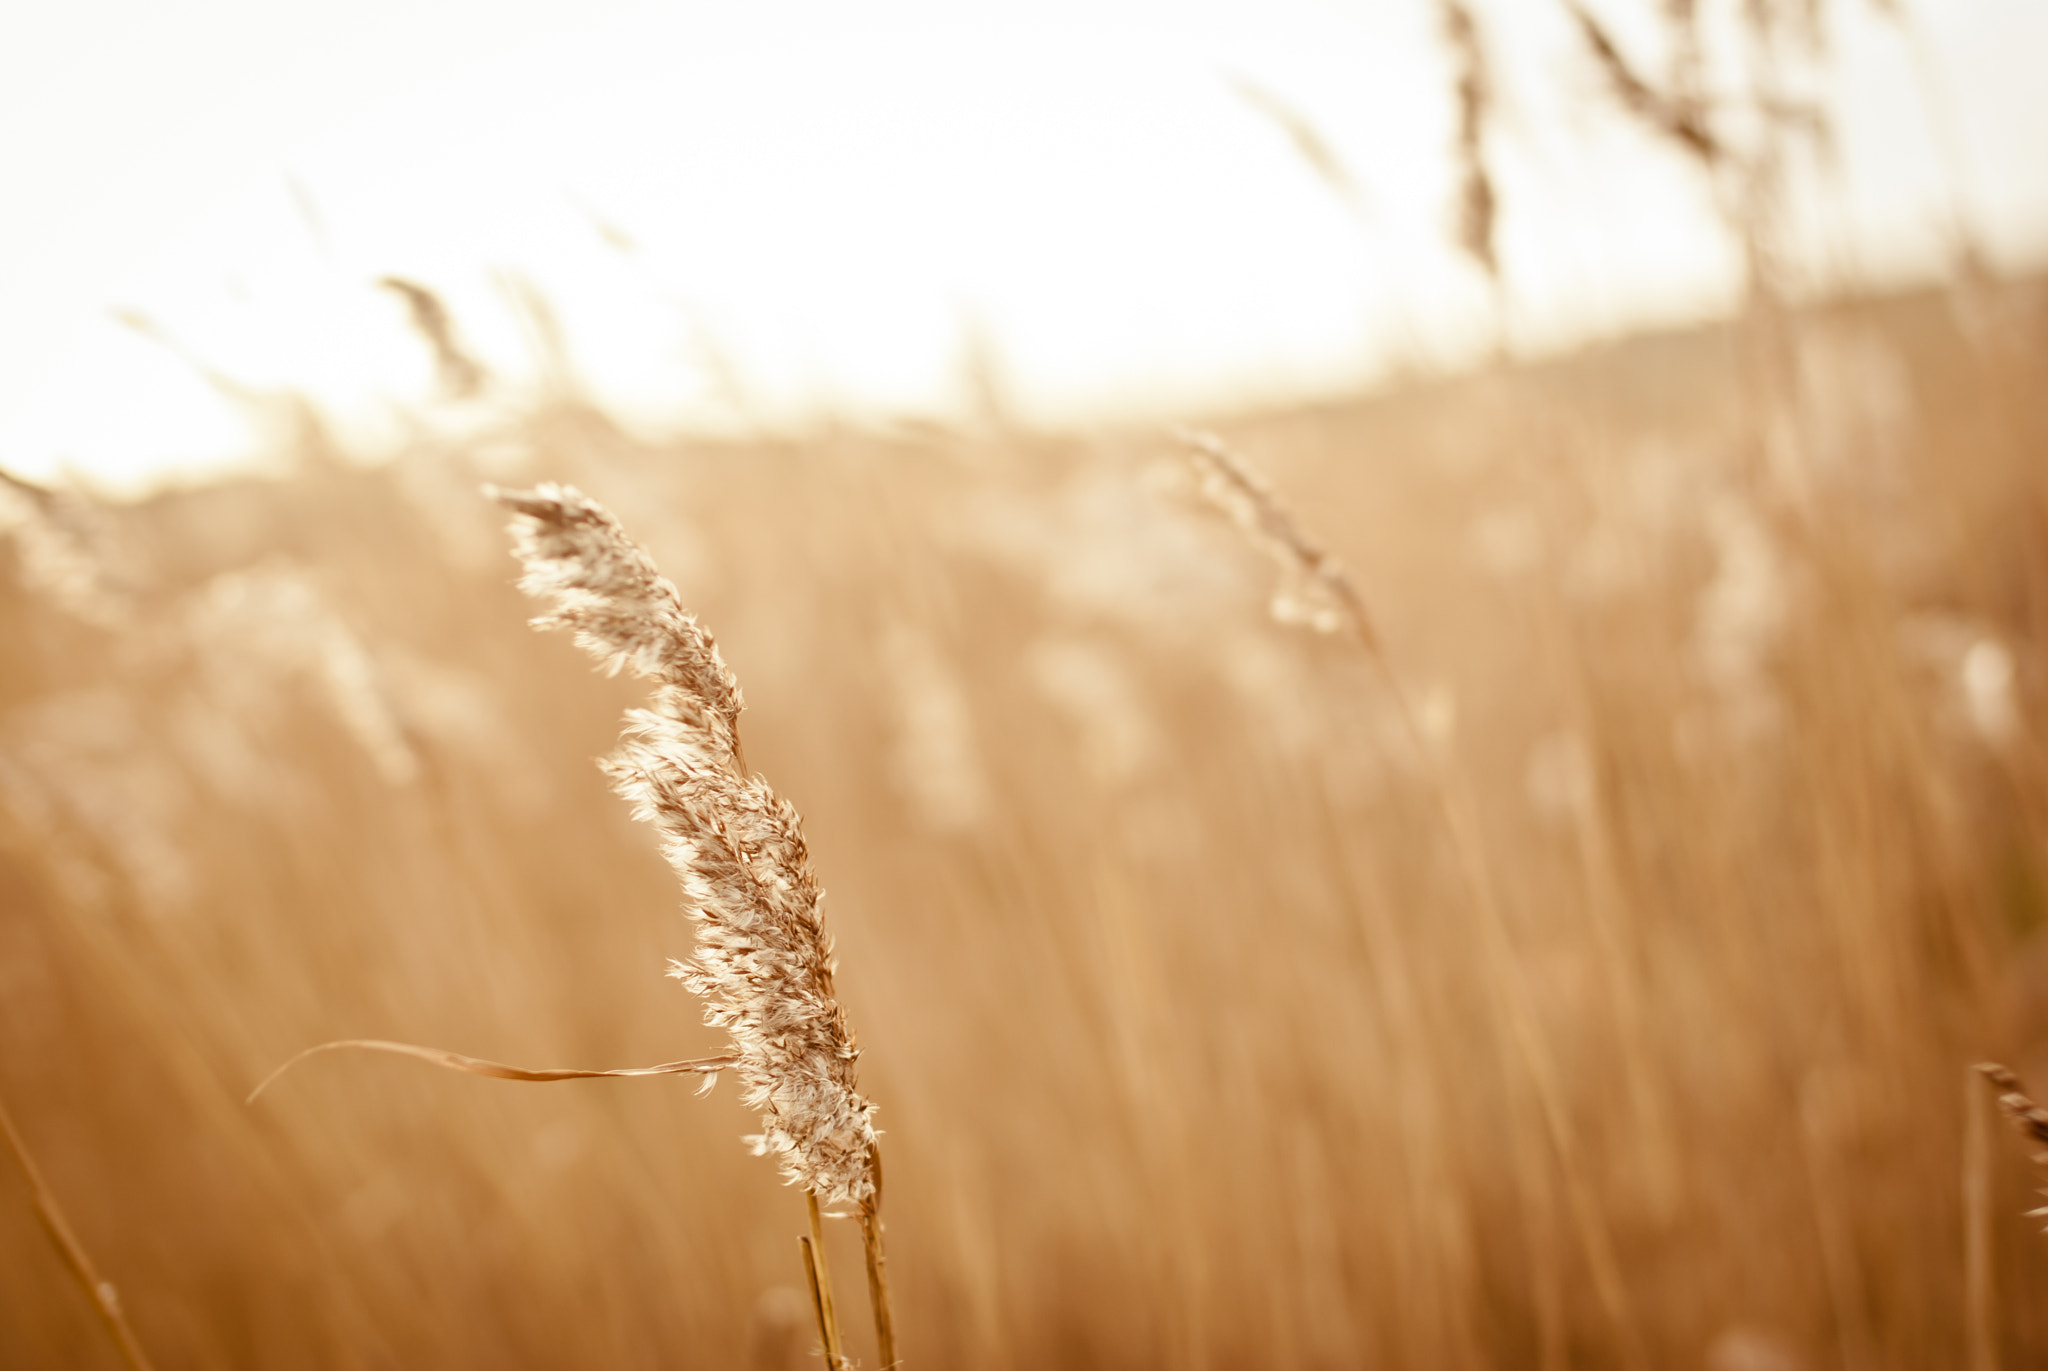 Photograph cereals by Steffi  on 500px